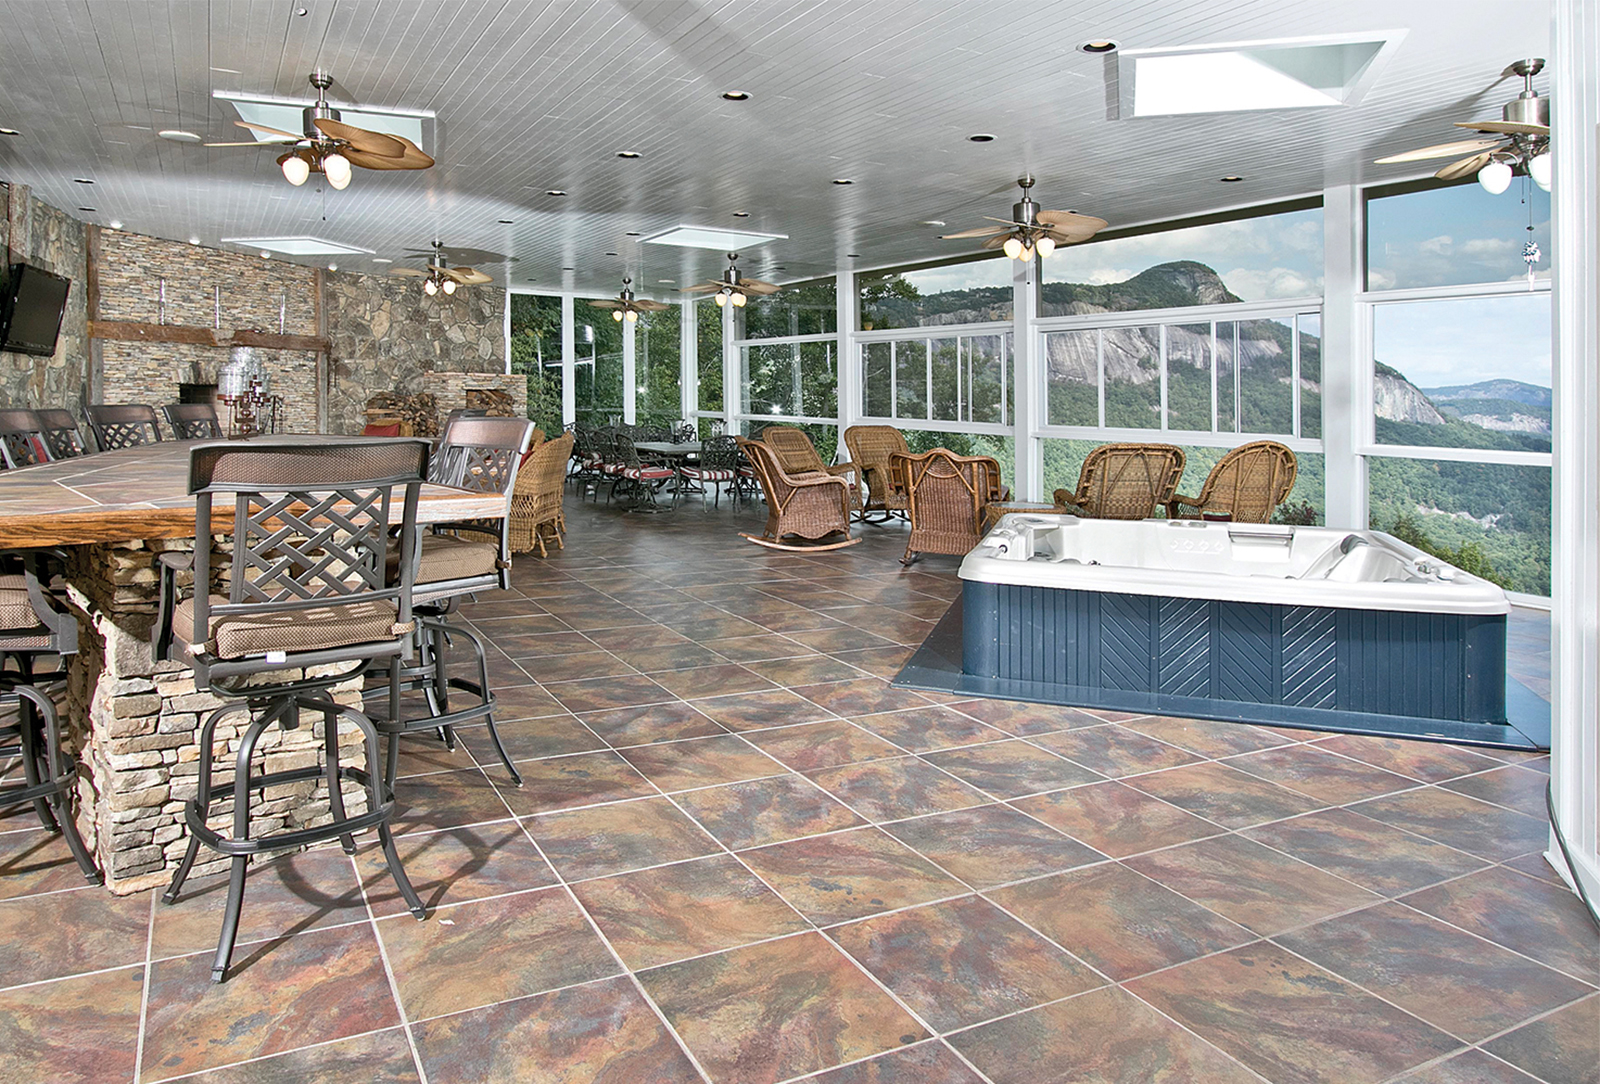 Chateau-vacation-rental-highlands-nc-hottub